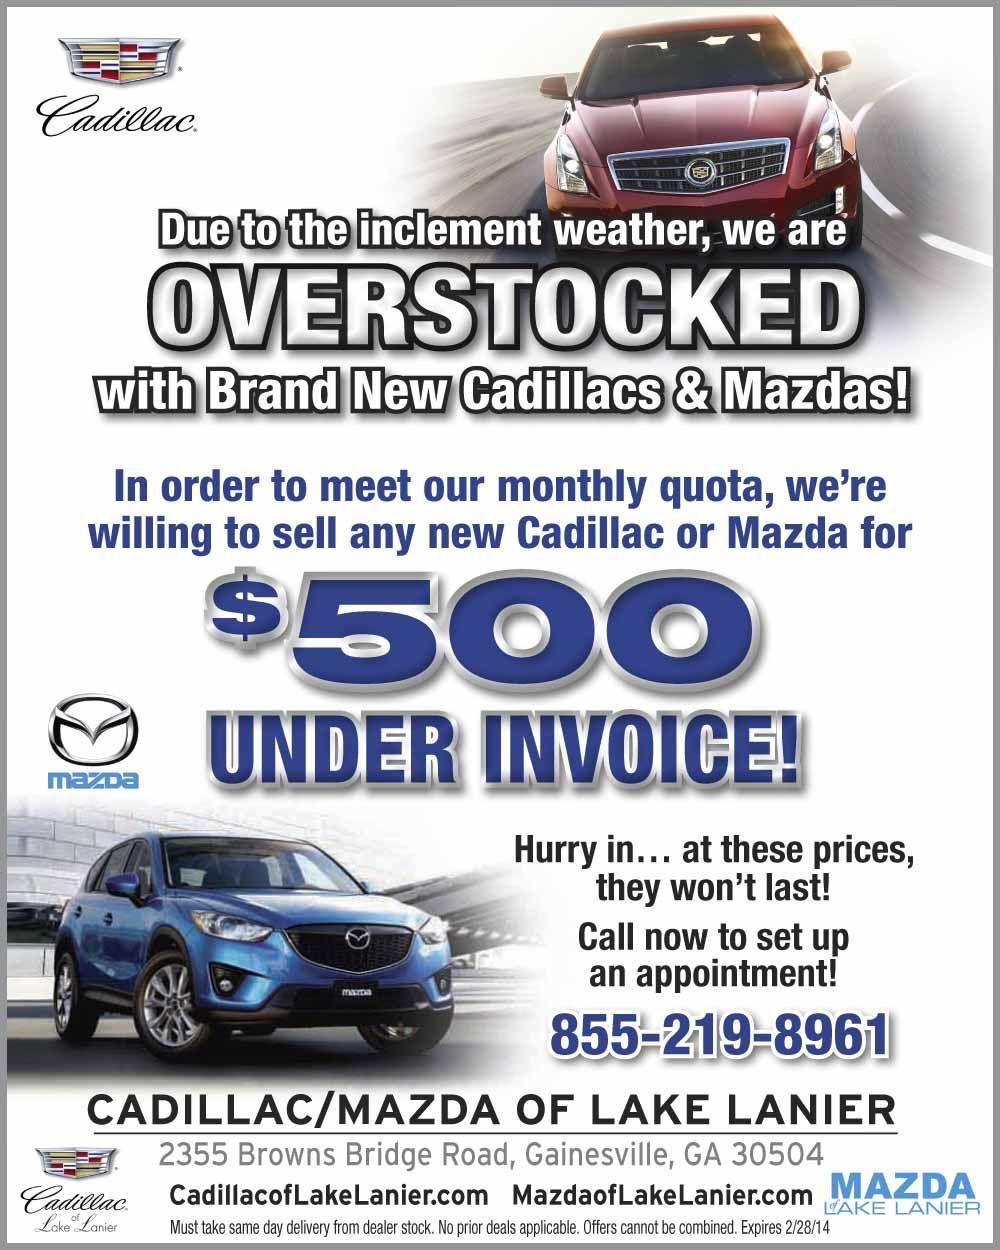 Pin On Ad Campaigns For Cadillac Of Lake Lanier